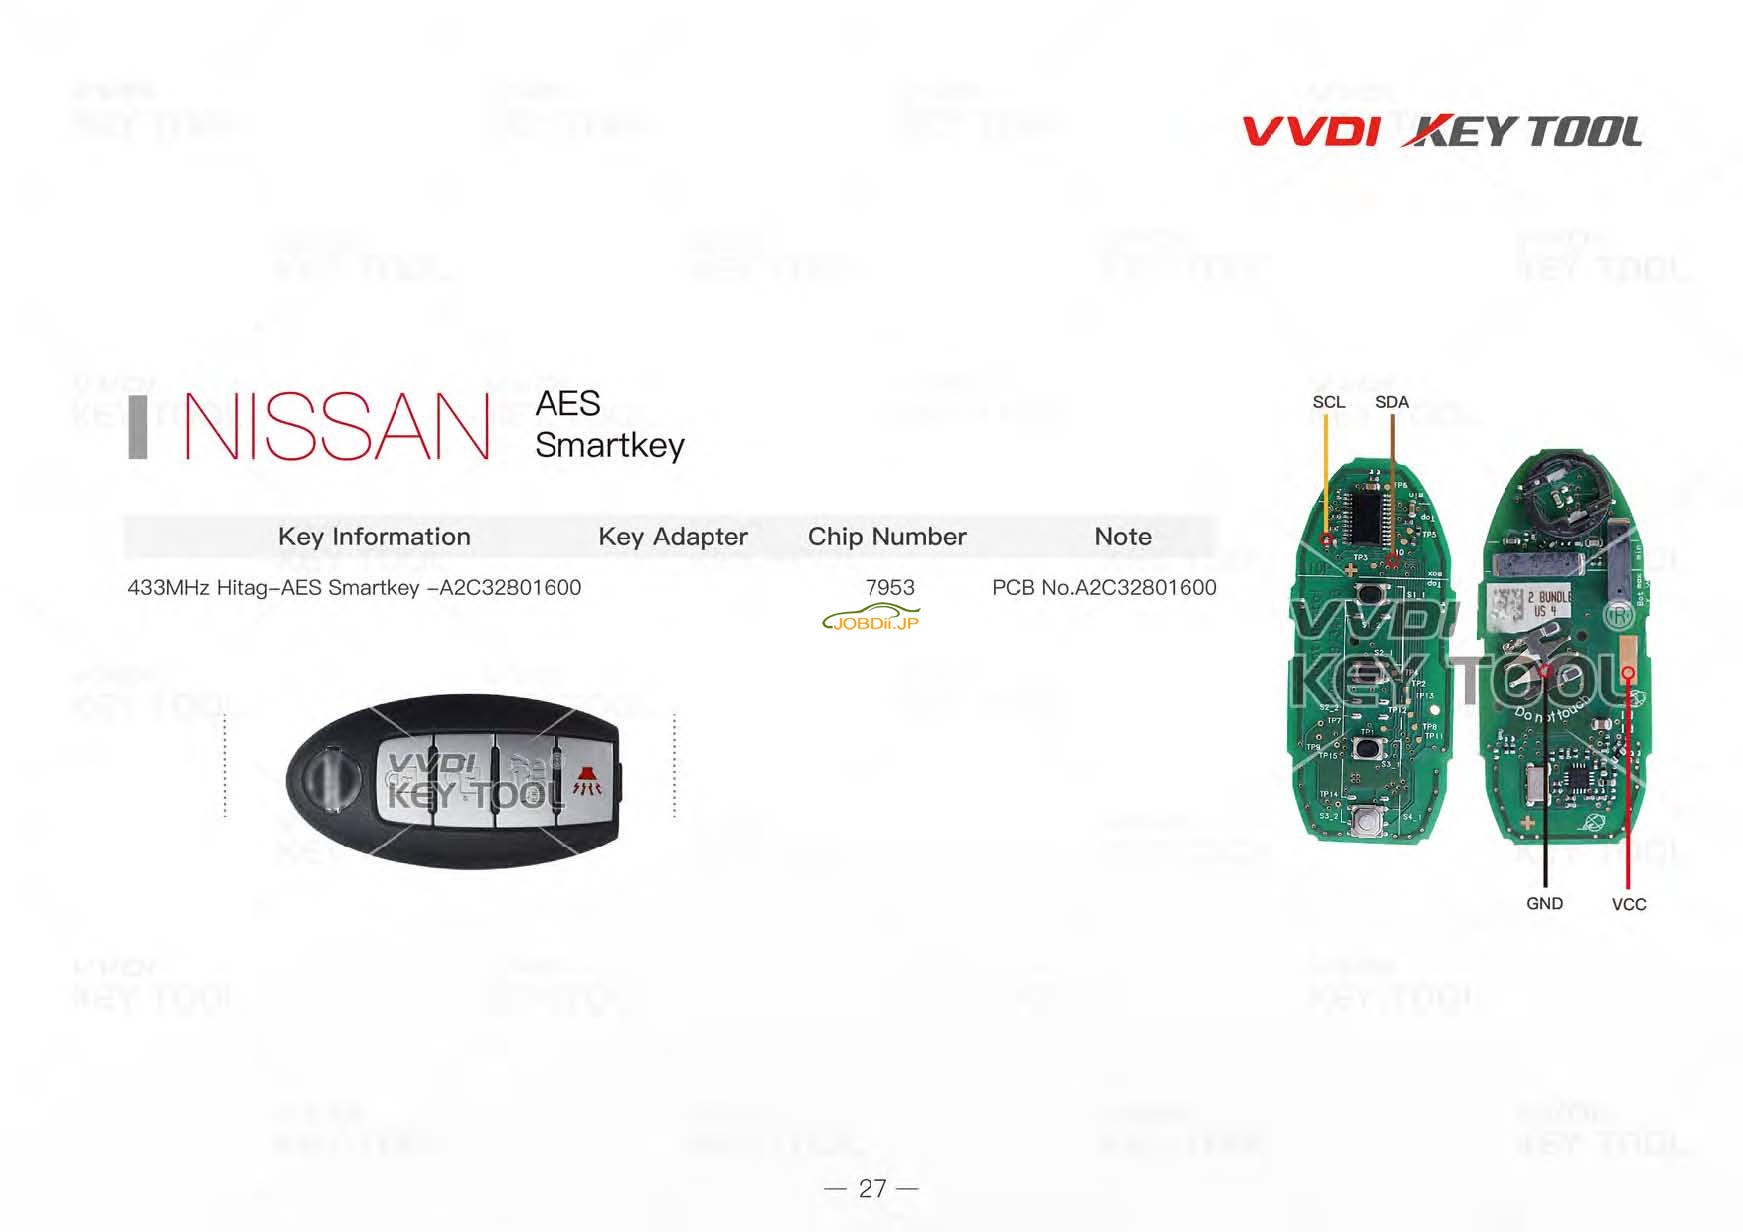 vvdi-key-tool-renew-diagram-27